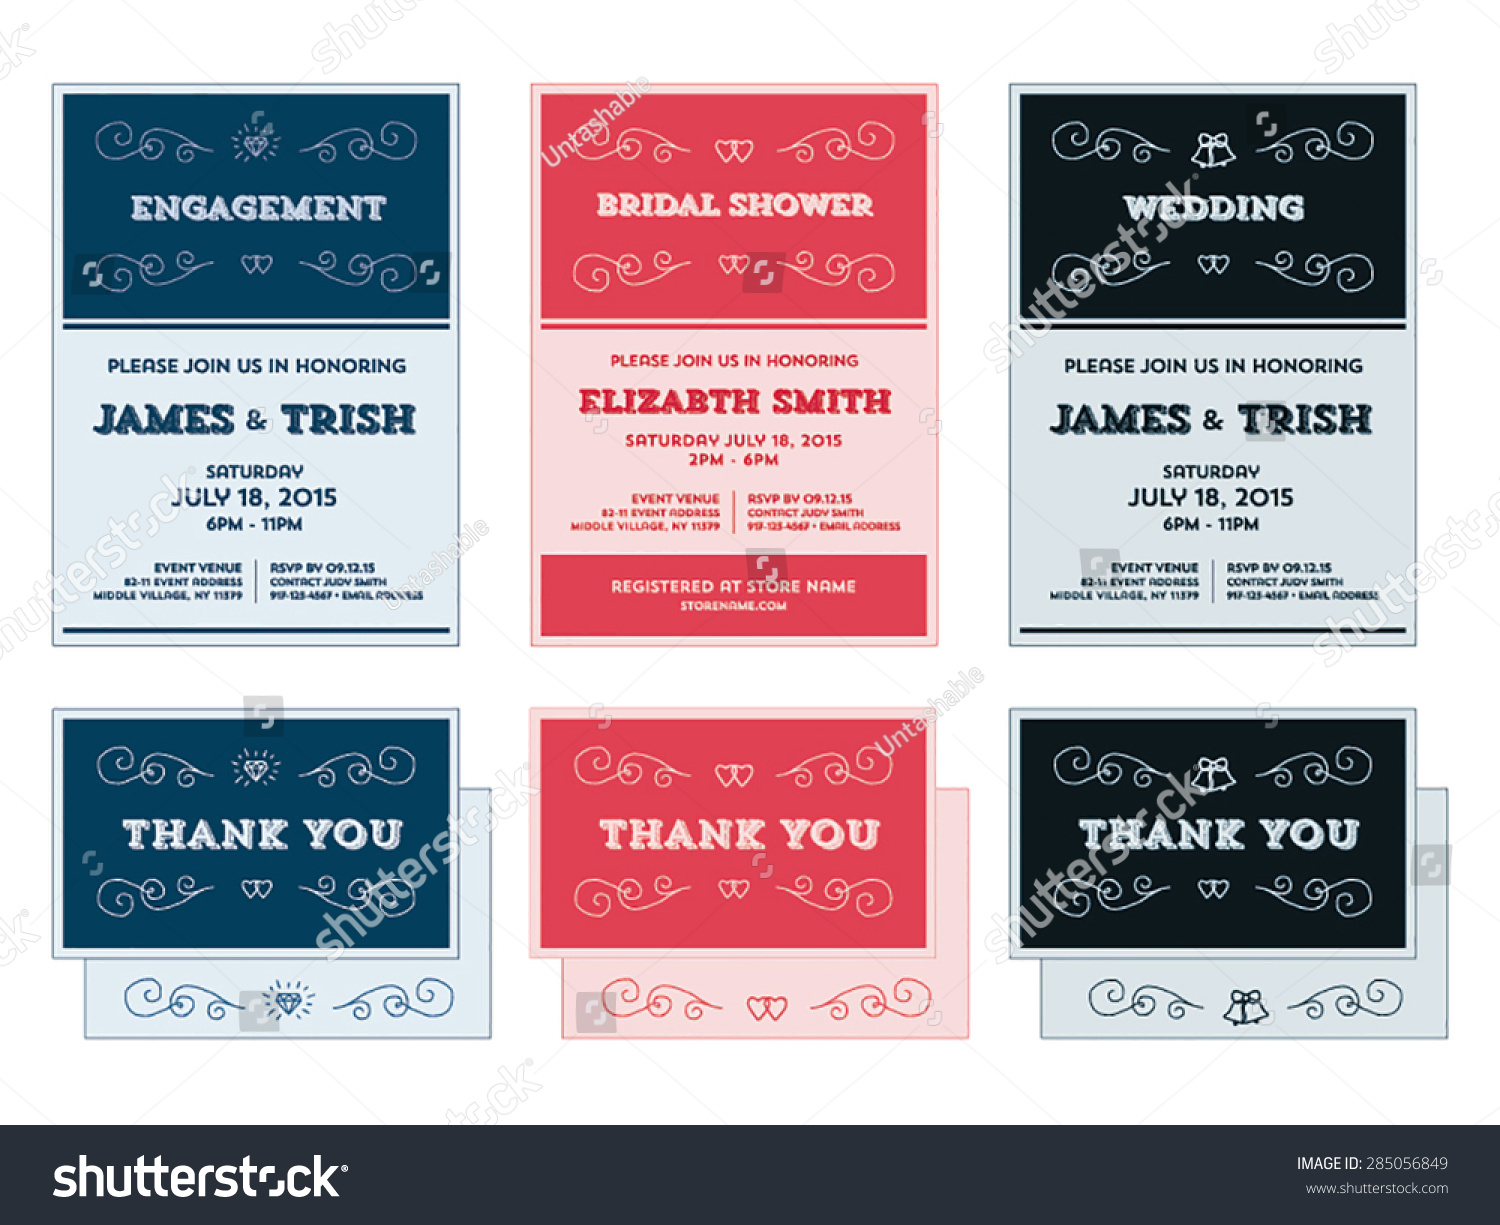 Wedding engagement shower invitation templates vector stock vector wedding engagement shower invitation templates in vector format stopboris